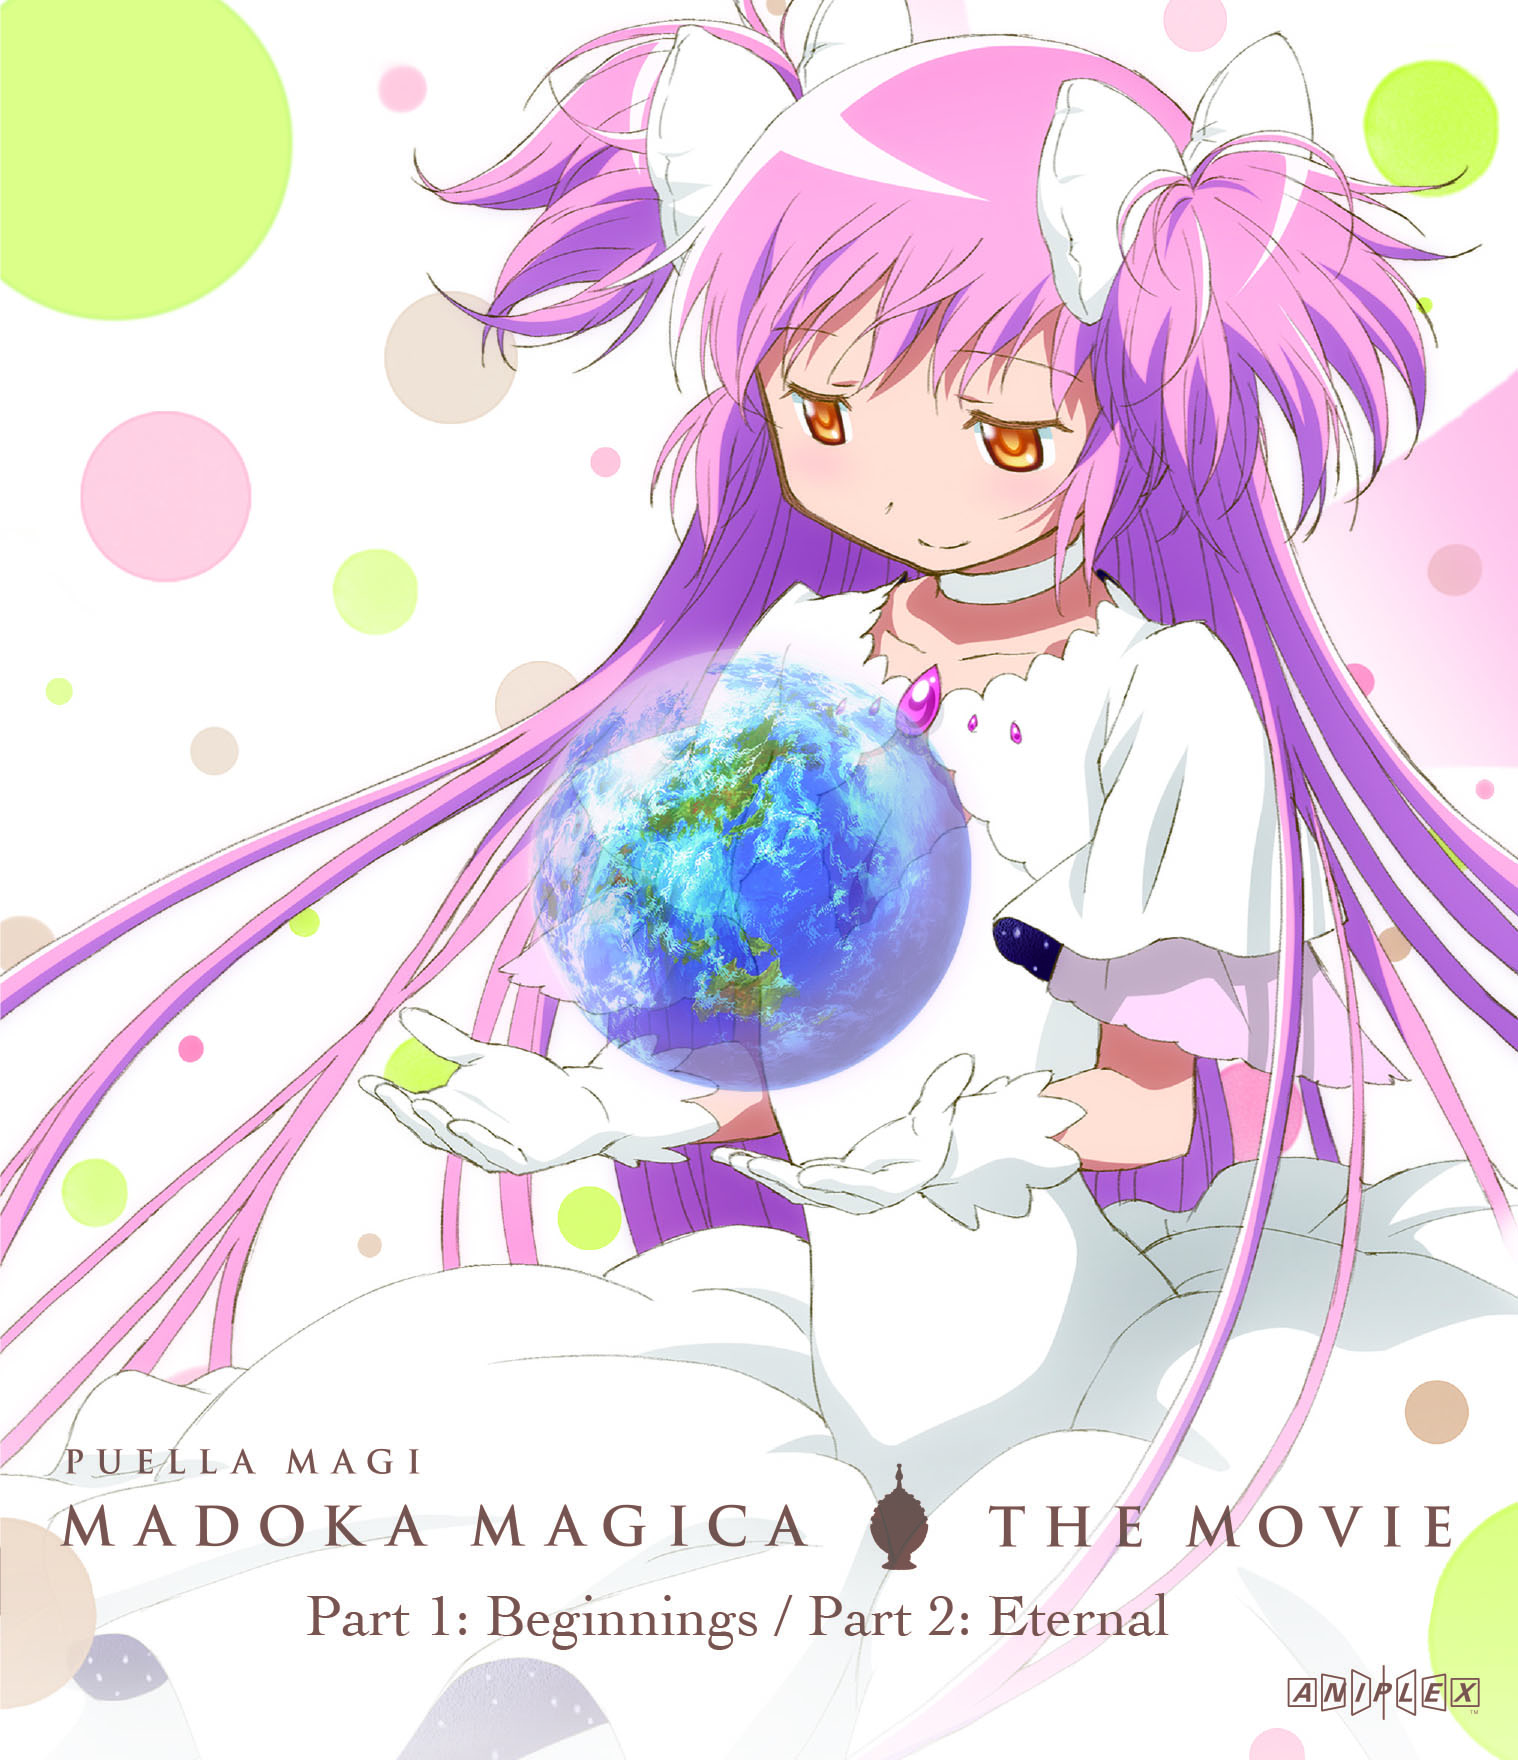 Puella Magi Madoka Magica the Movie Part 1 and 2 Standard Edition Blu-ray 816546020255